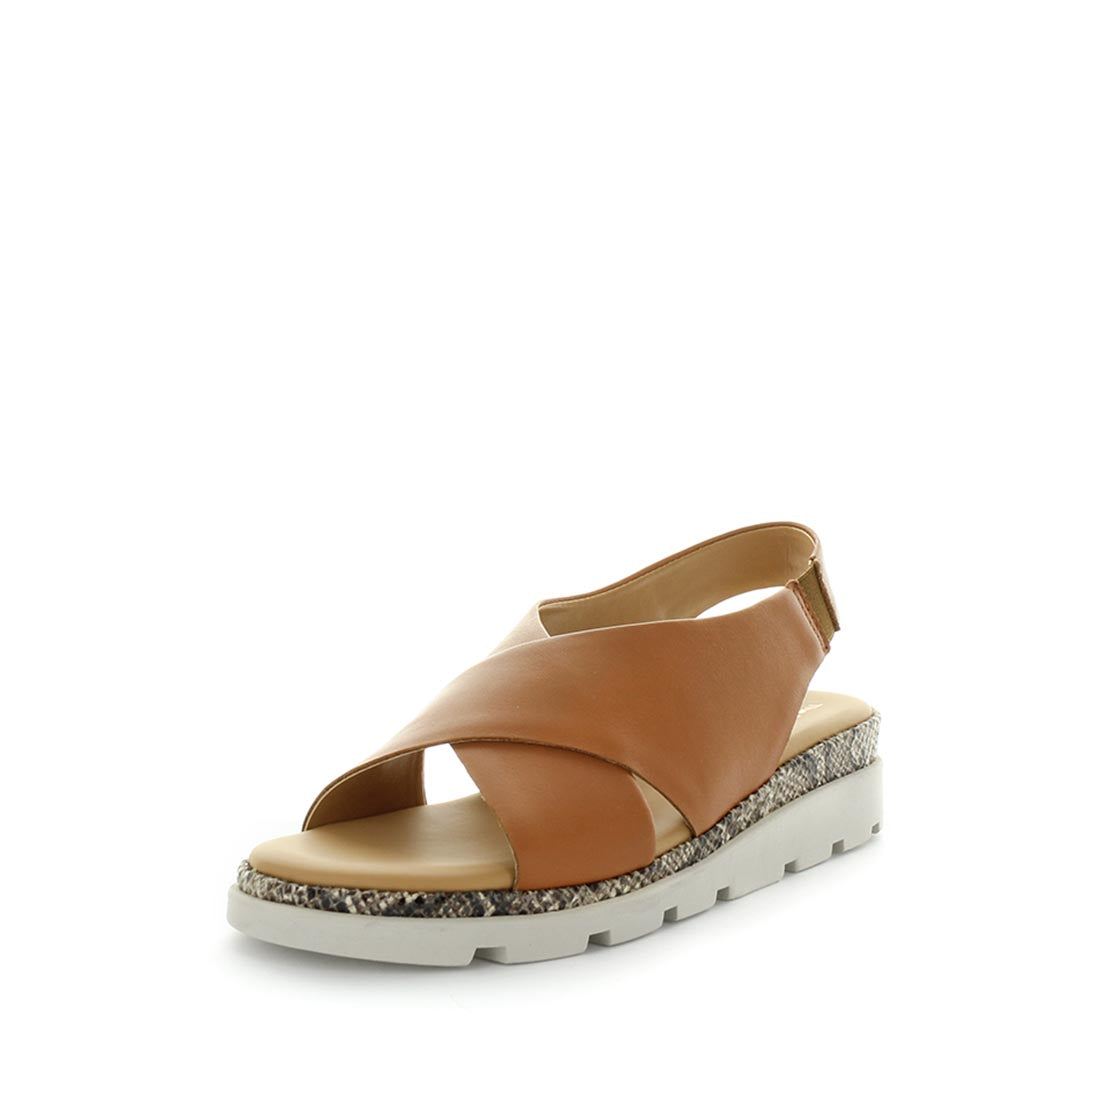 Lynn by the flexx - a very comfortable, high quality leather sandal - cross leather upper detail, extra support in the insole for more cushioning, elastic back strap for fit and a trendy and stylish design  -womens shoes - womens sandals - comfort sandals - tan